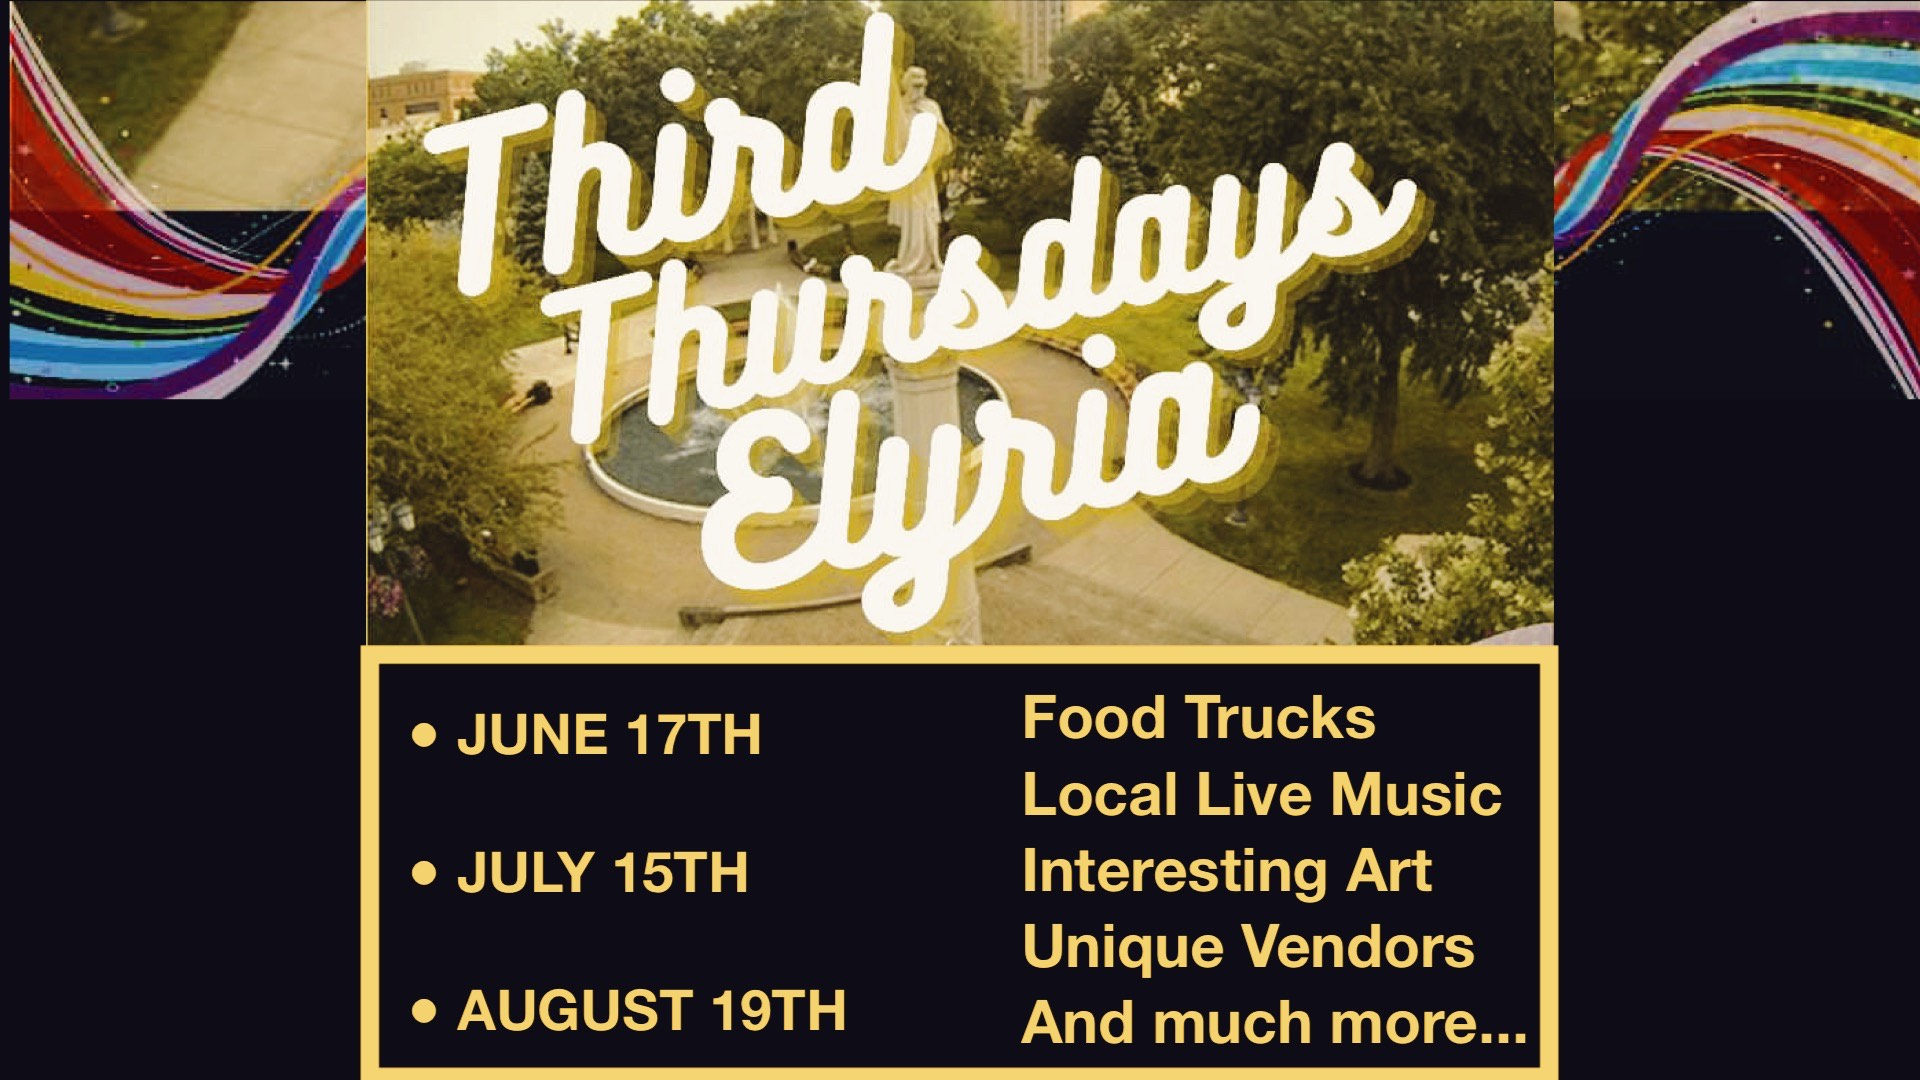 The image overlays the text 'Third Thursdays Elyria' over an aerial image of Ely Square Park. Red, yellow, blue, and purples are on the sides of the image. Text reads: June 17th, July 15th, and August 19th - food trucks, live local music, interesting art, unique vendors, and much more.